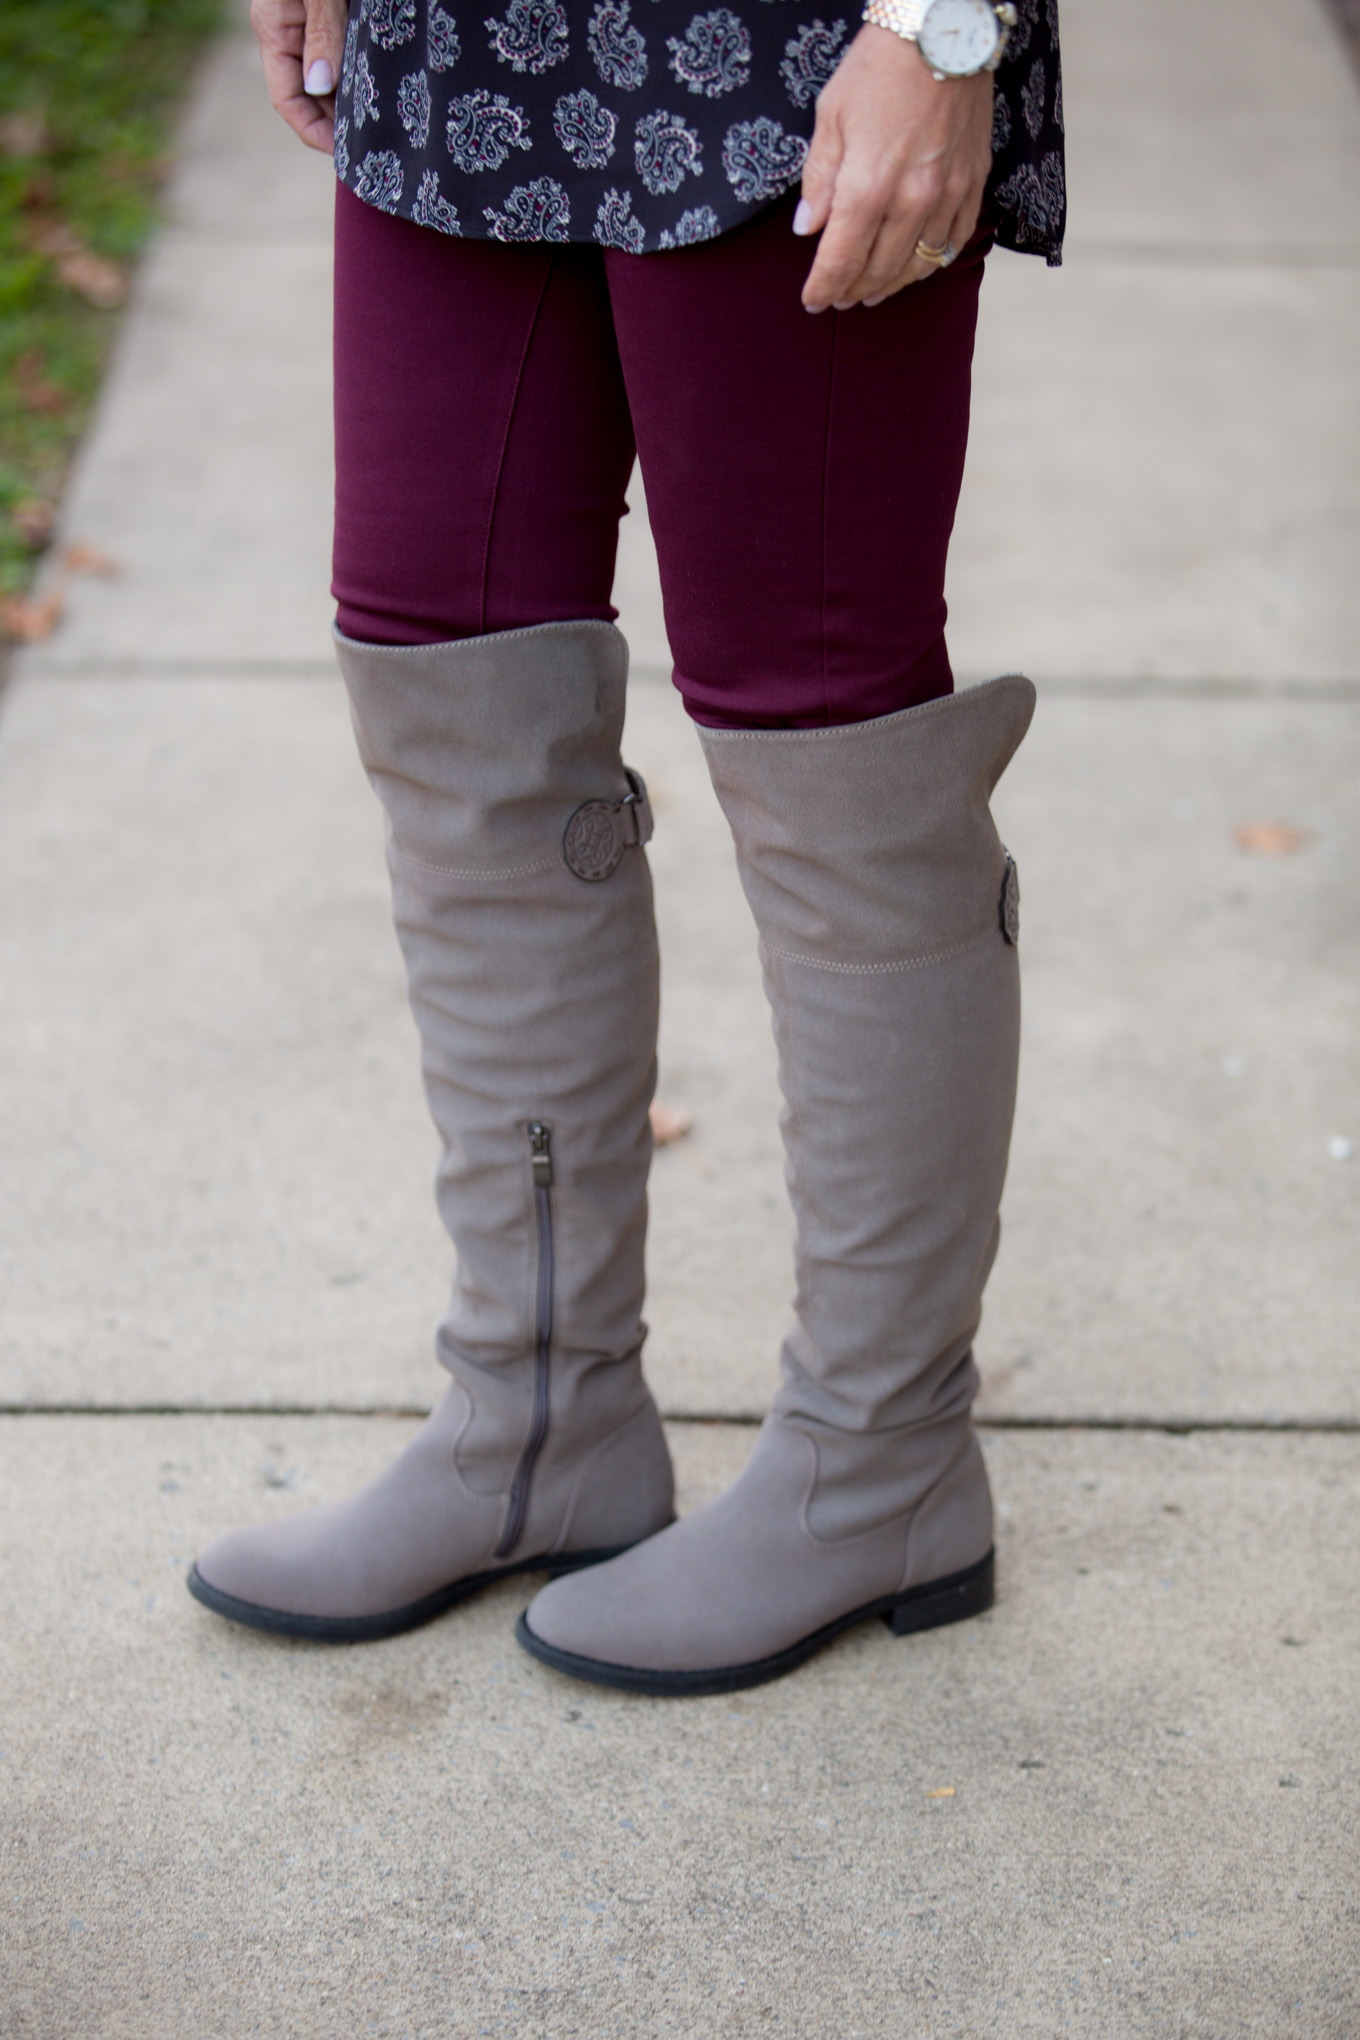 Fashion blogger, Cyndi Spivey, styling two trendy boot styles available at Rack Room Shoes Early Black Friday Sale.